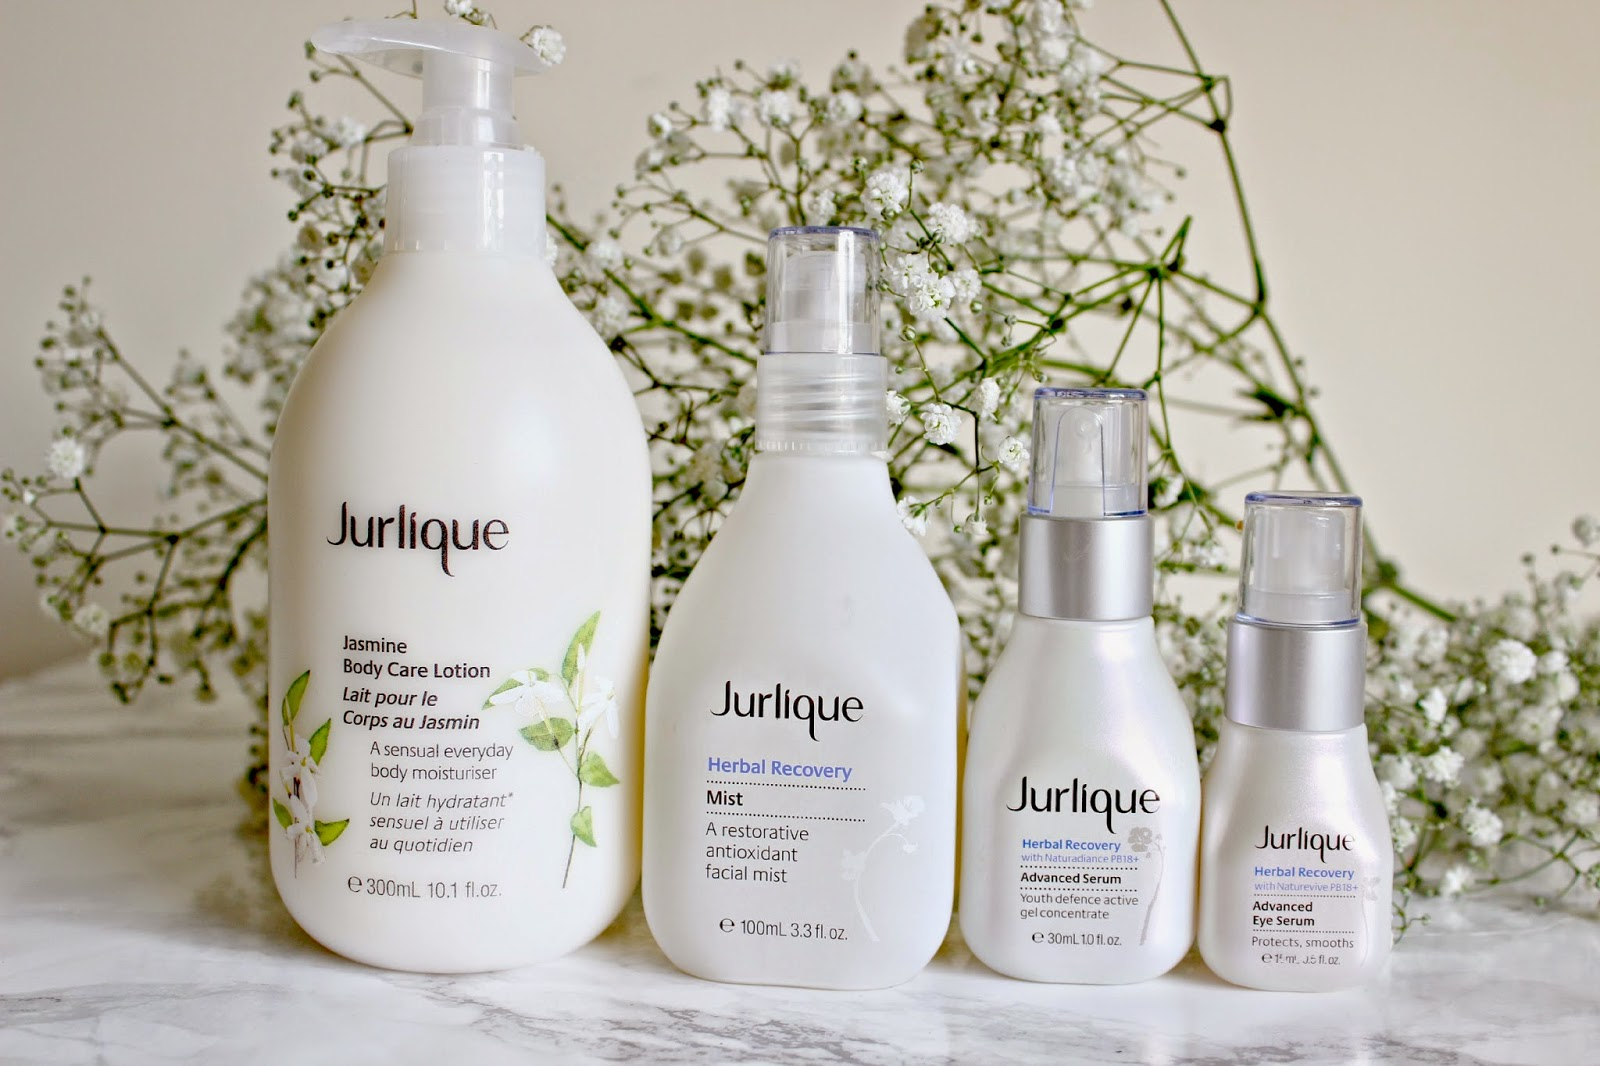 Herbal Recovery Signature Serum by jurlique #16